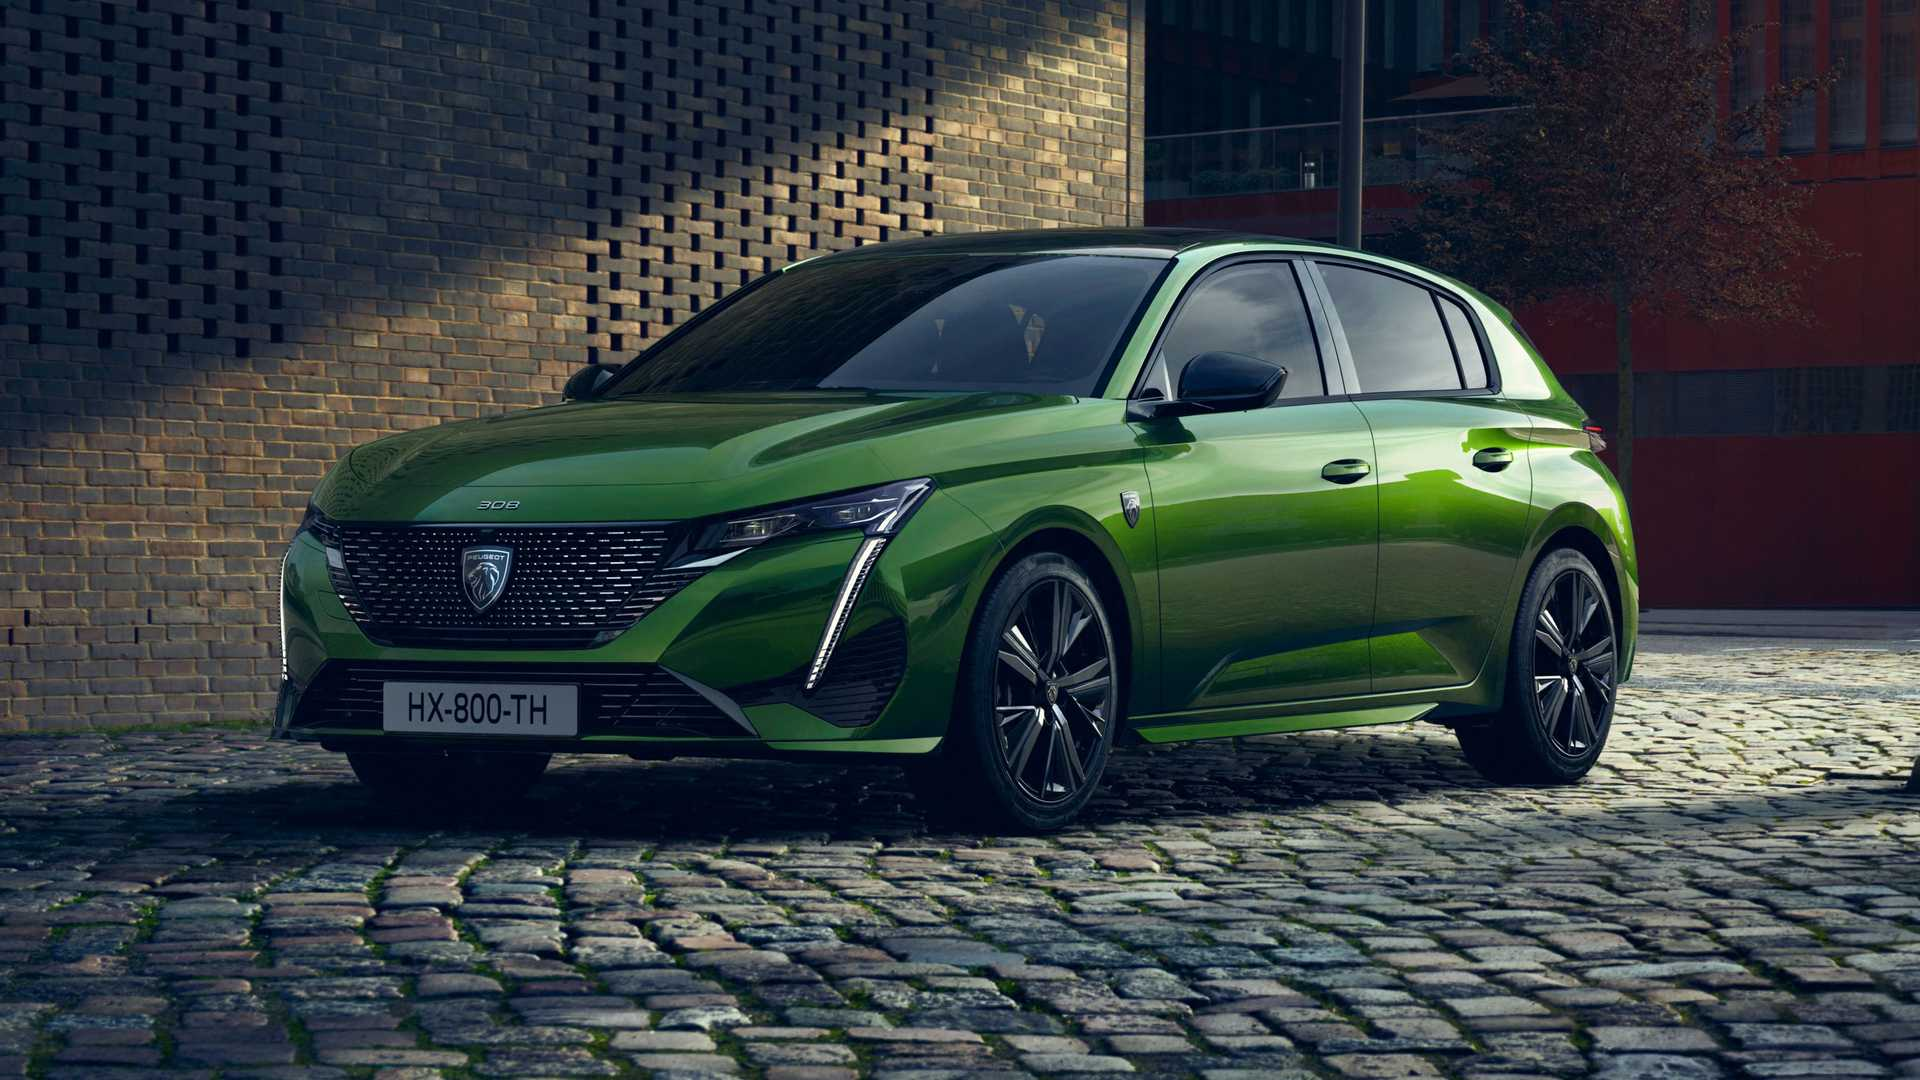 Two weeks after the unveiling of Peugeot's new 308, Automotive News Europe is reporting that the car will get an all-electric version soon.